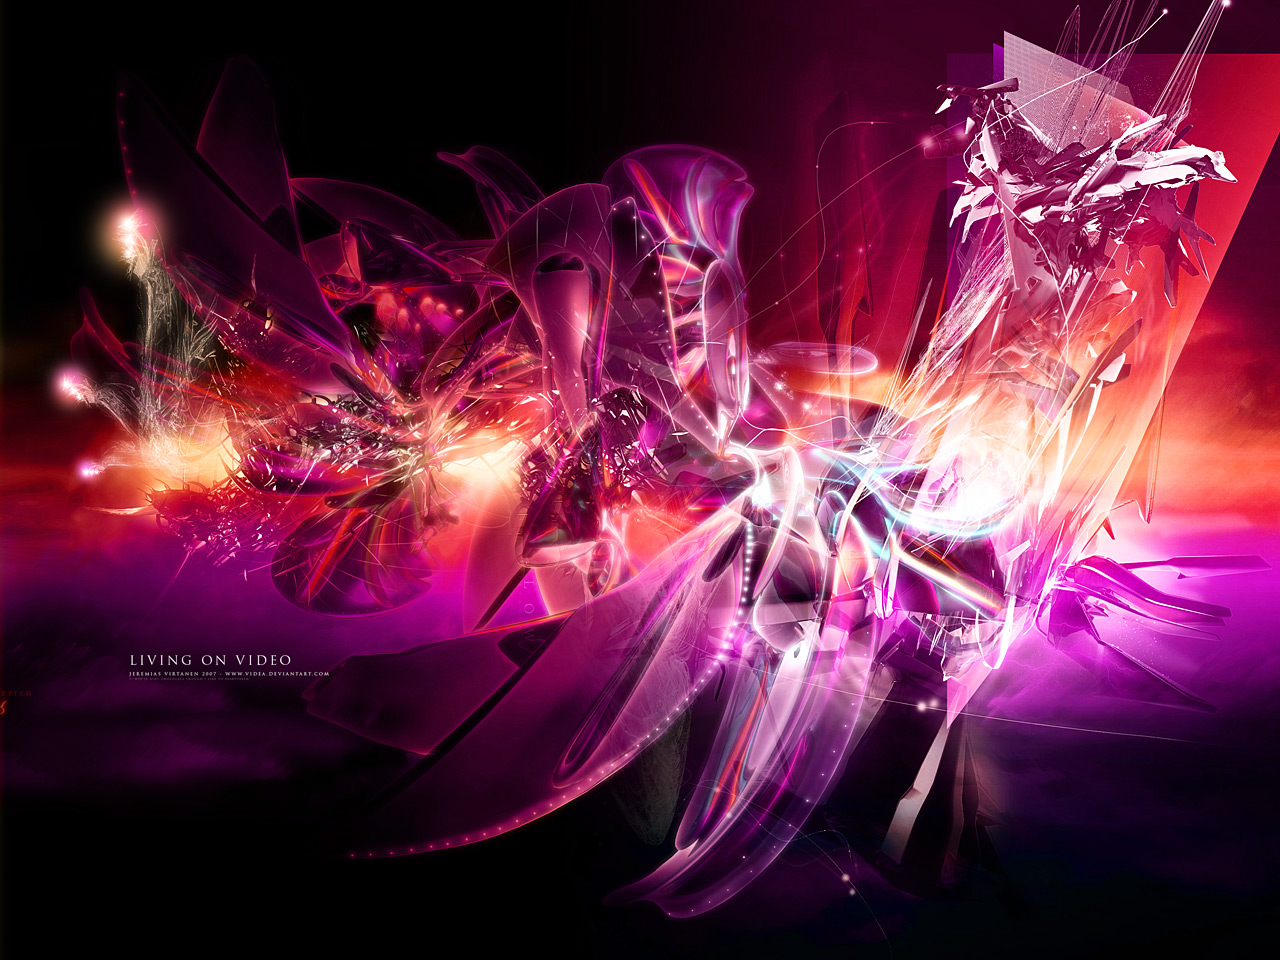 http://4.bp.blogspot.com/_JClEFgsqLig/TOyDdqZ5K7I/AAAAAAAAA5o/3bM-GqMVEaY/s1600/Abstract-Art%20wallpapers-13.jpeg